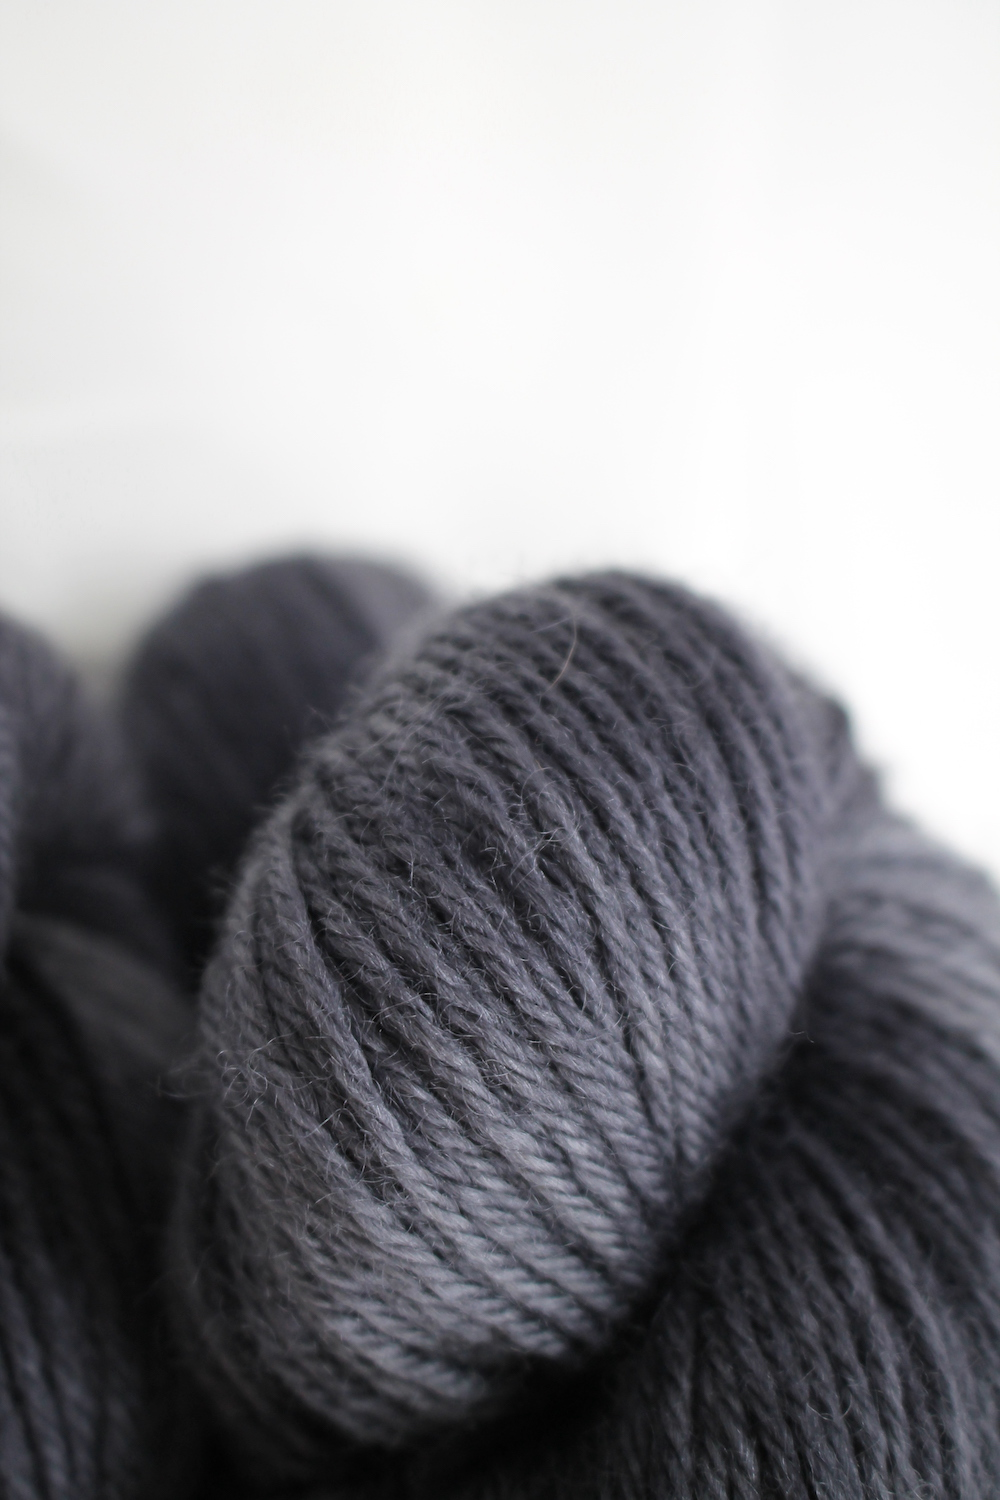 A pile of skeins of Nene DK in charcoal grey